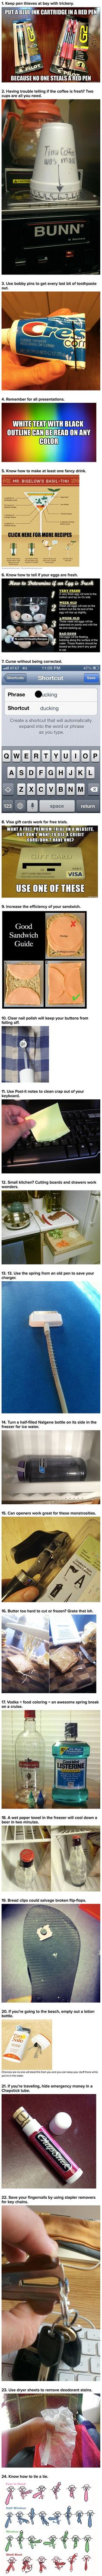 """""""Life Hacks"""" you can actually use--Volume 5 - Imgur stuff, lifehack, life hack, life tips, simpl life, coffee time, trick, diy, thing"""